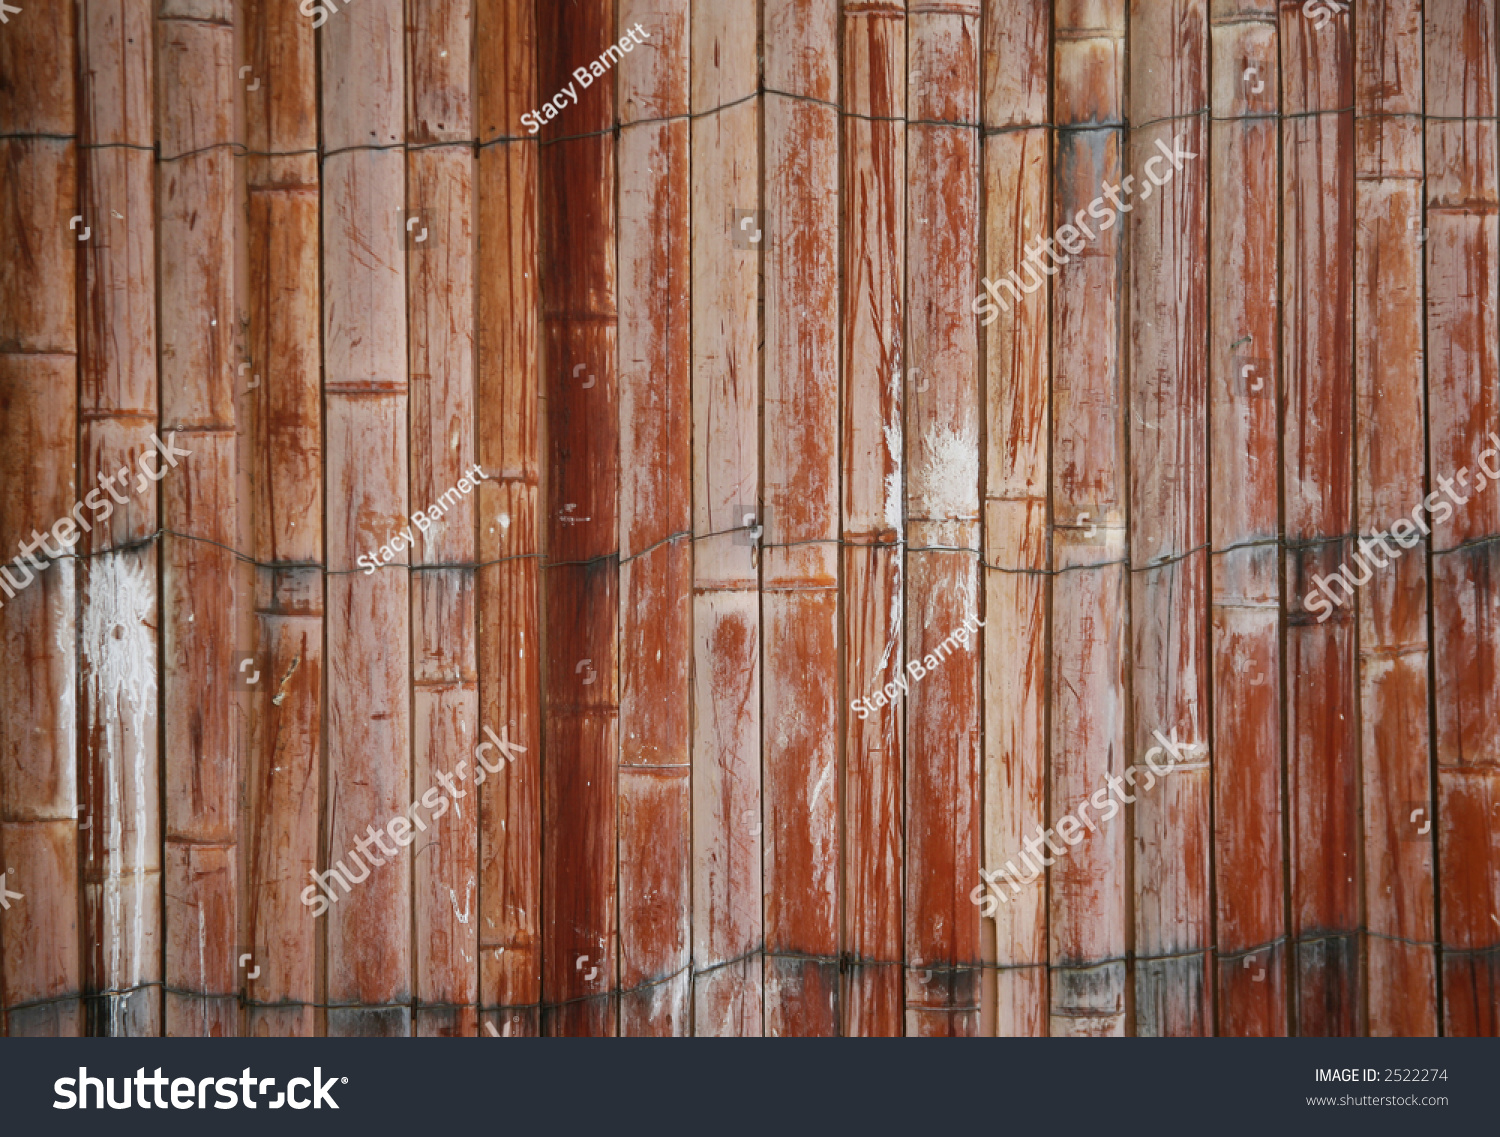 Beautiful Exterior Wooden Fence That Has Paint Splats On It And Is Weathered Stock Photo 2522274